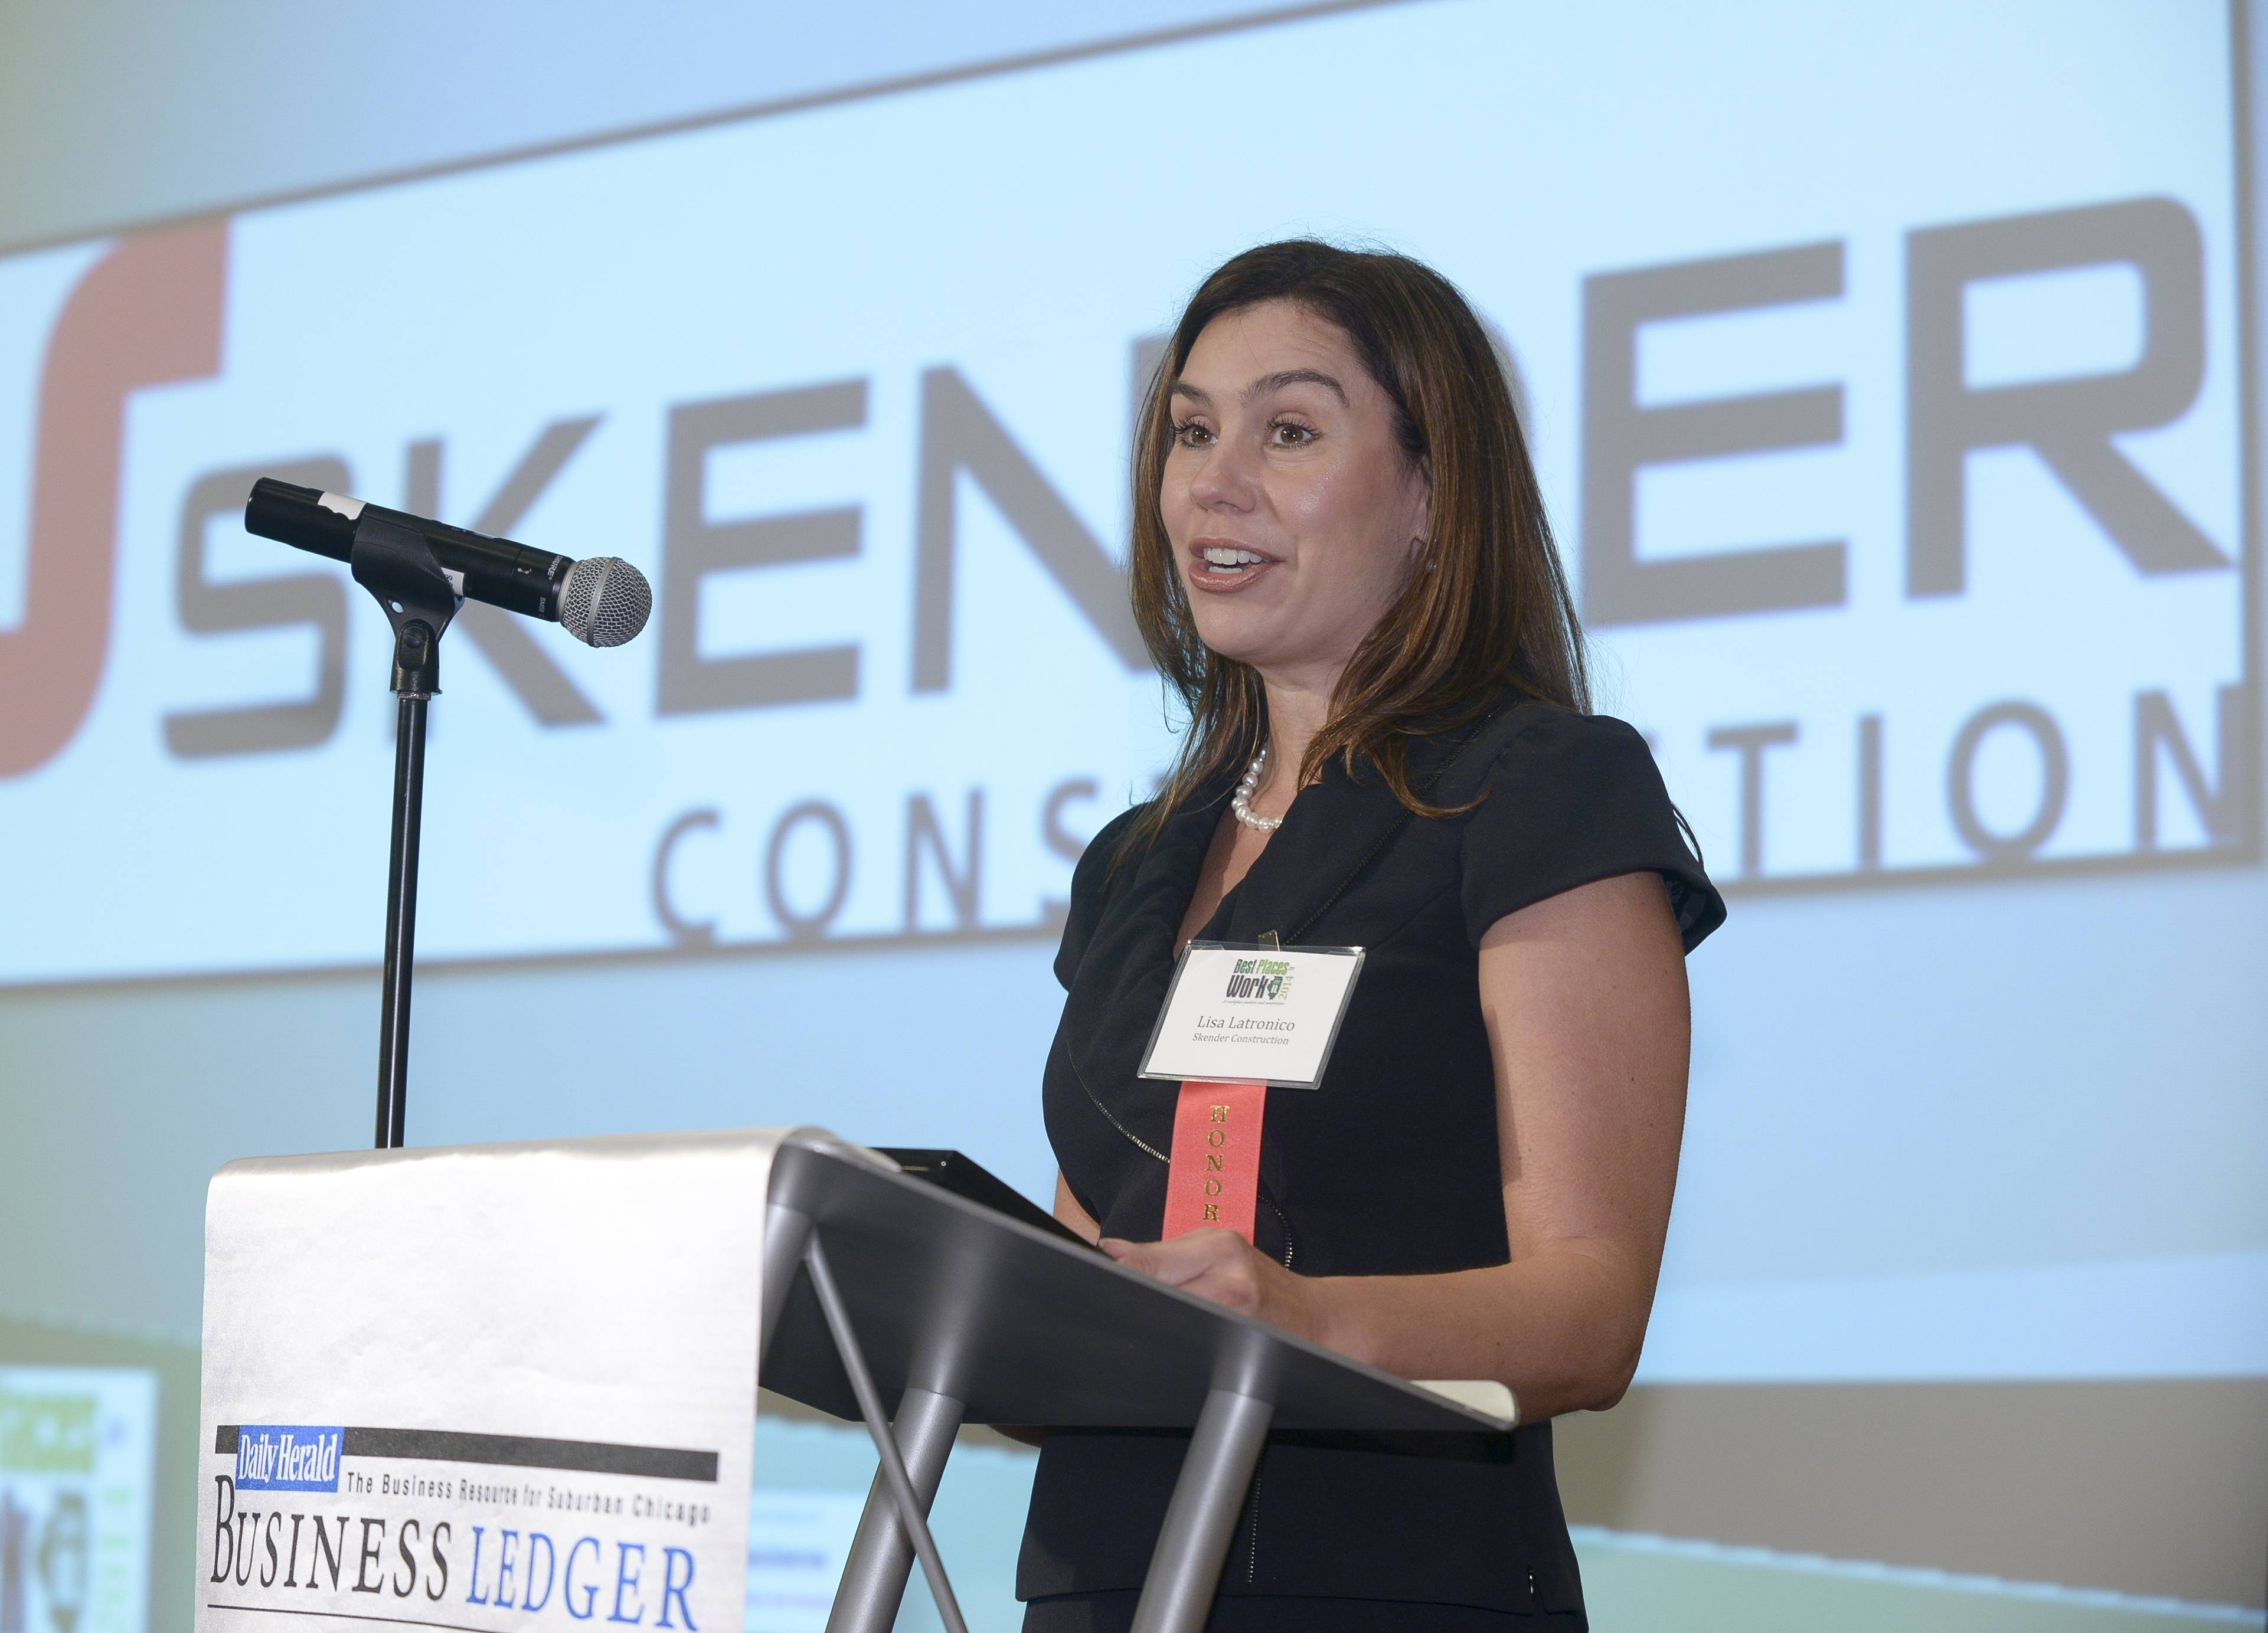 Lisa Latronico, director of human resources for Skender Construction of Chicago, accepts the first-place award for the Daily Herald Business Ledger's Best Places to Work in Illinois 2014 for medium-sized employers during a ceremony at the Chicago Marriott Oak Brook.